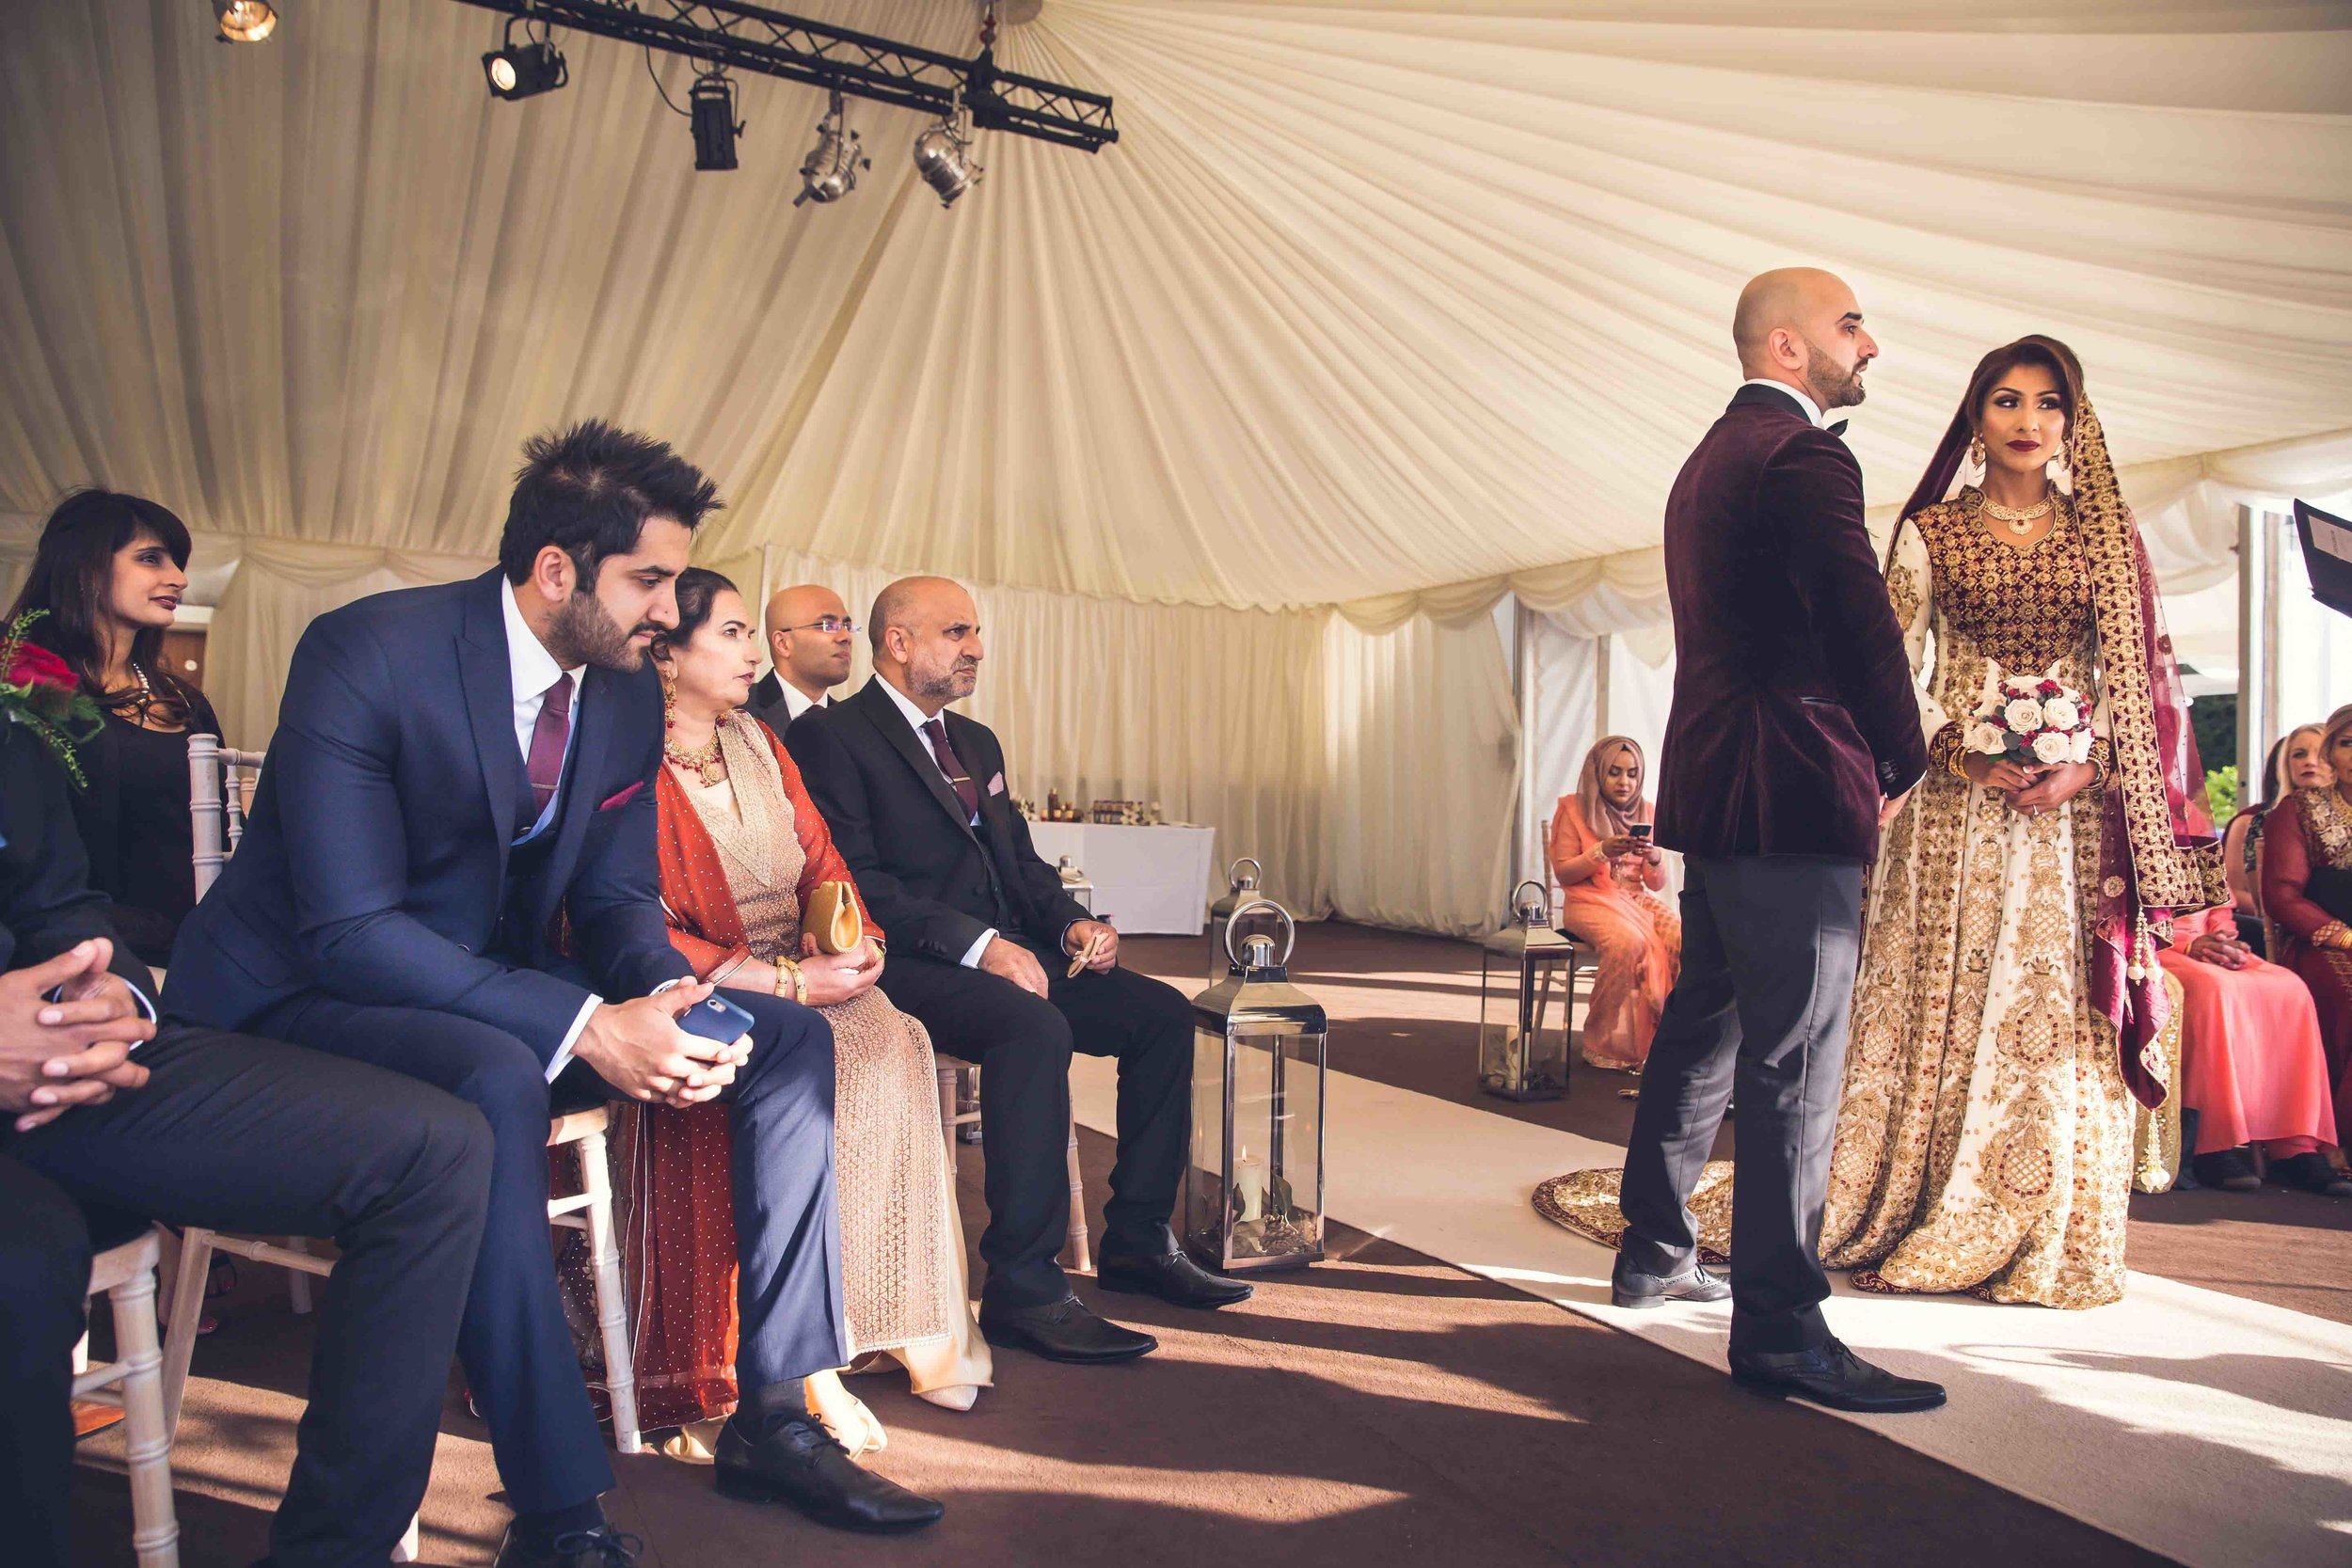 Asian Wedding Photographer Opu Sultan Photography Lyme Park Scotland Edinburgh Glasgow London Manchester Liverpool Birmingham Wedding Photos prewed shoot Azman & Saira Blog-67.jpg